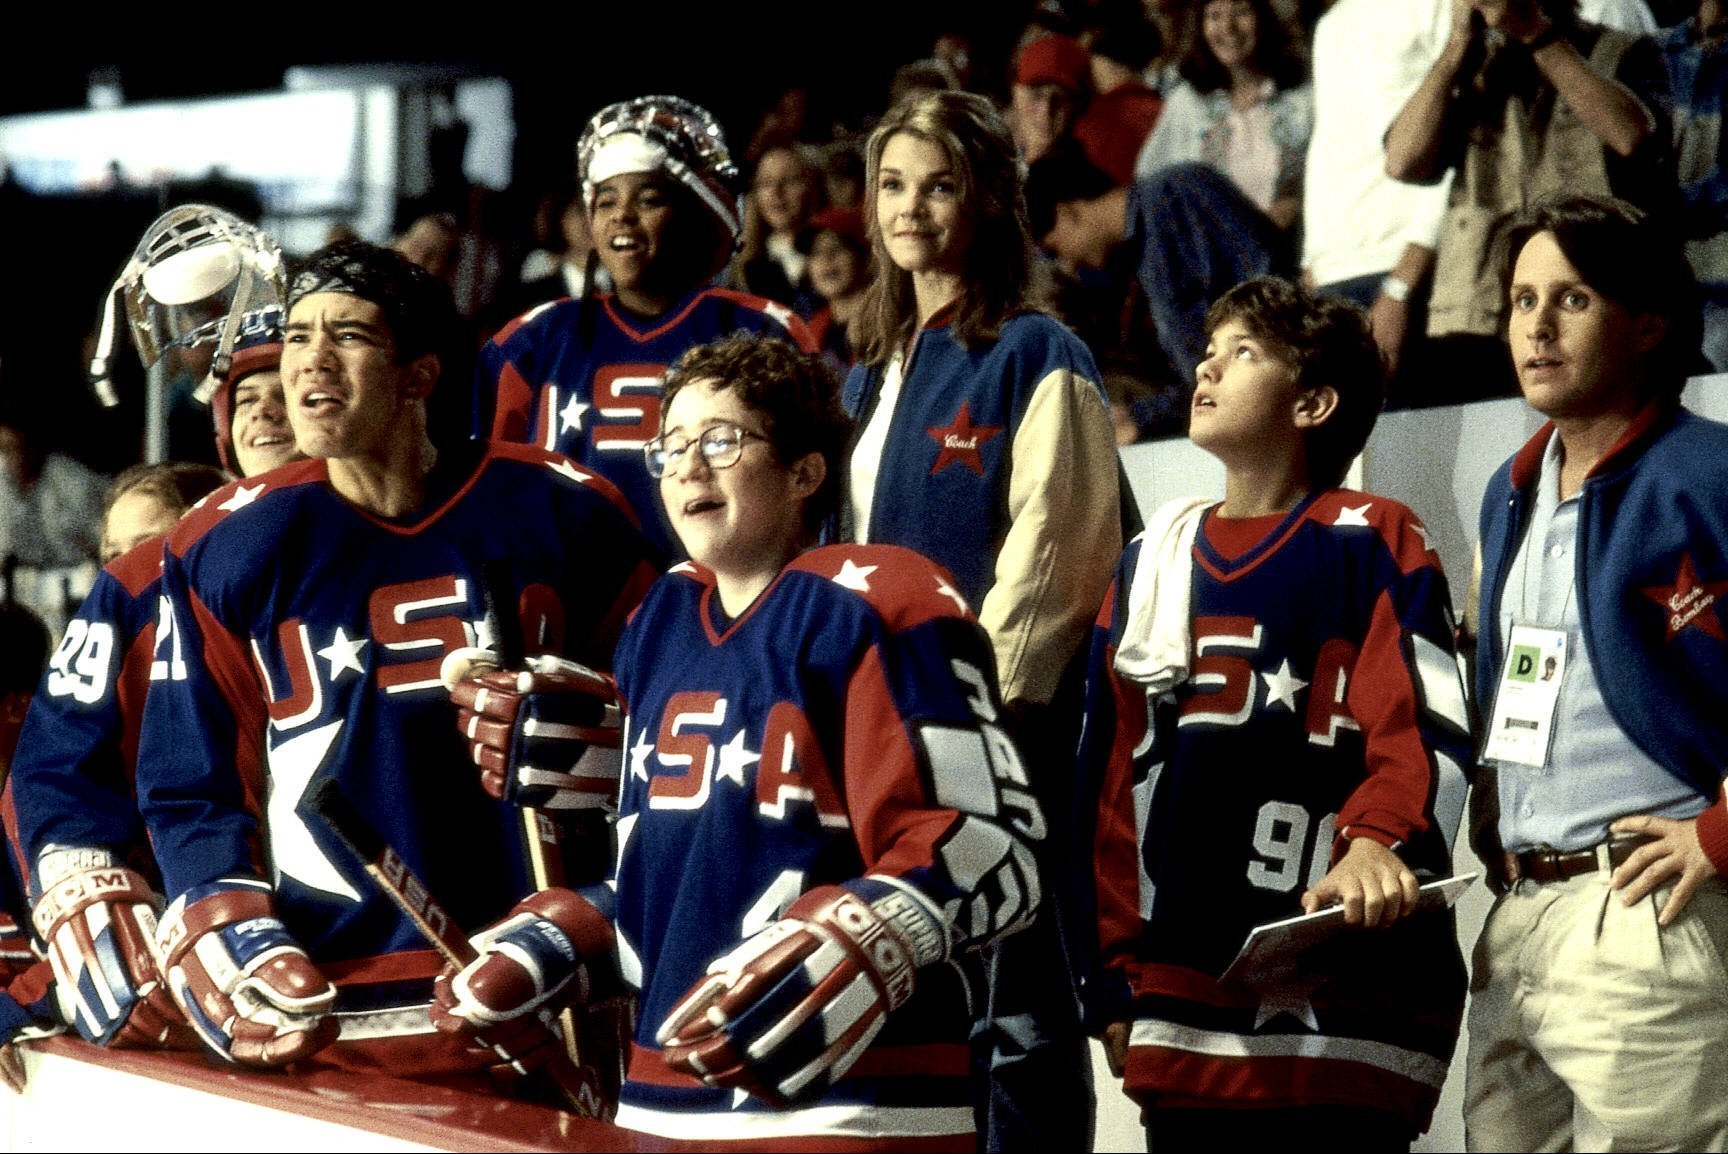 Team U.S.A. in  D2: The Mighty Ducks